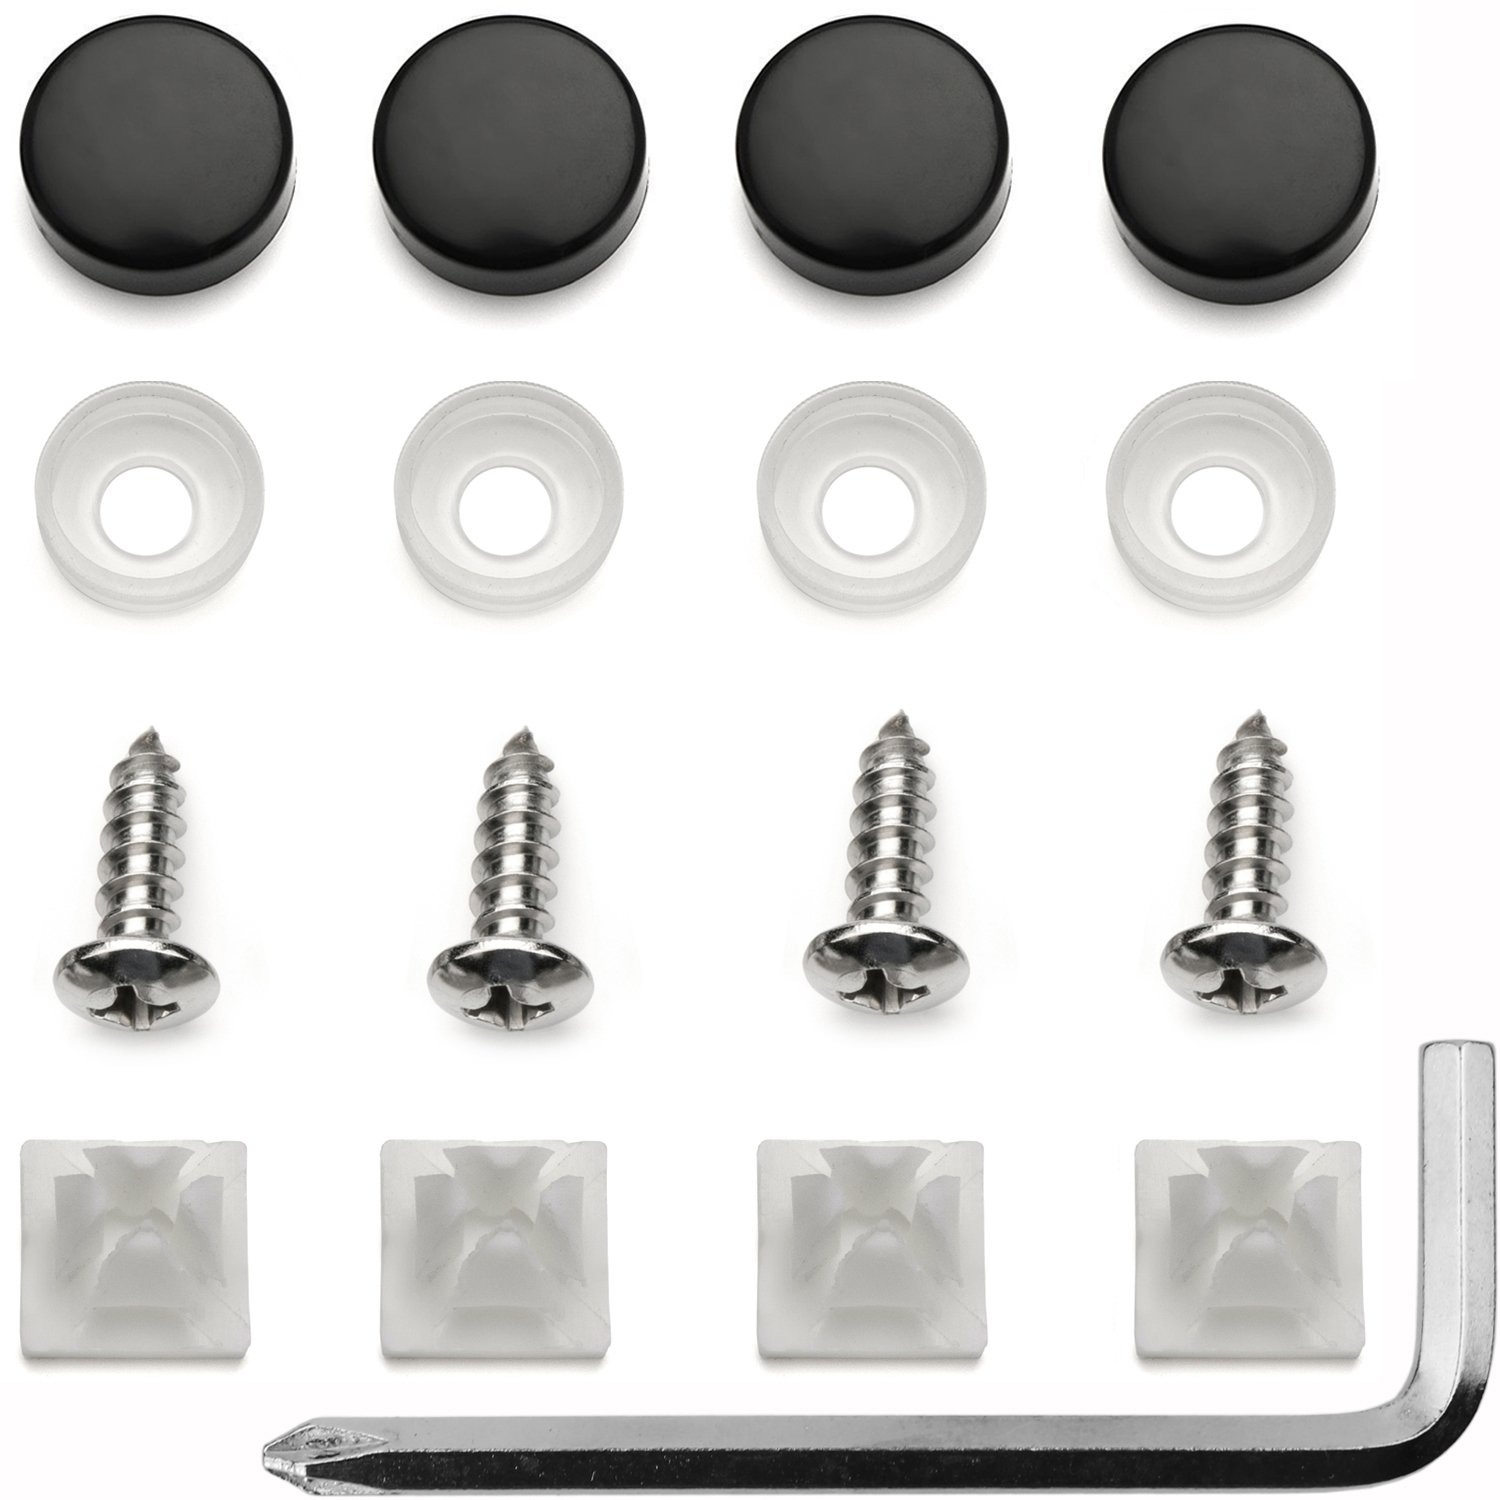 B00B5ZYY38 Stainless Steel License Plate Frame Screws Fasteners + Black Screw Caps 71Ez6bbZGKL